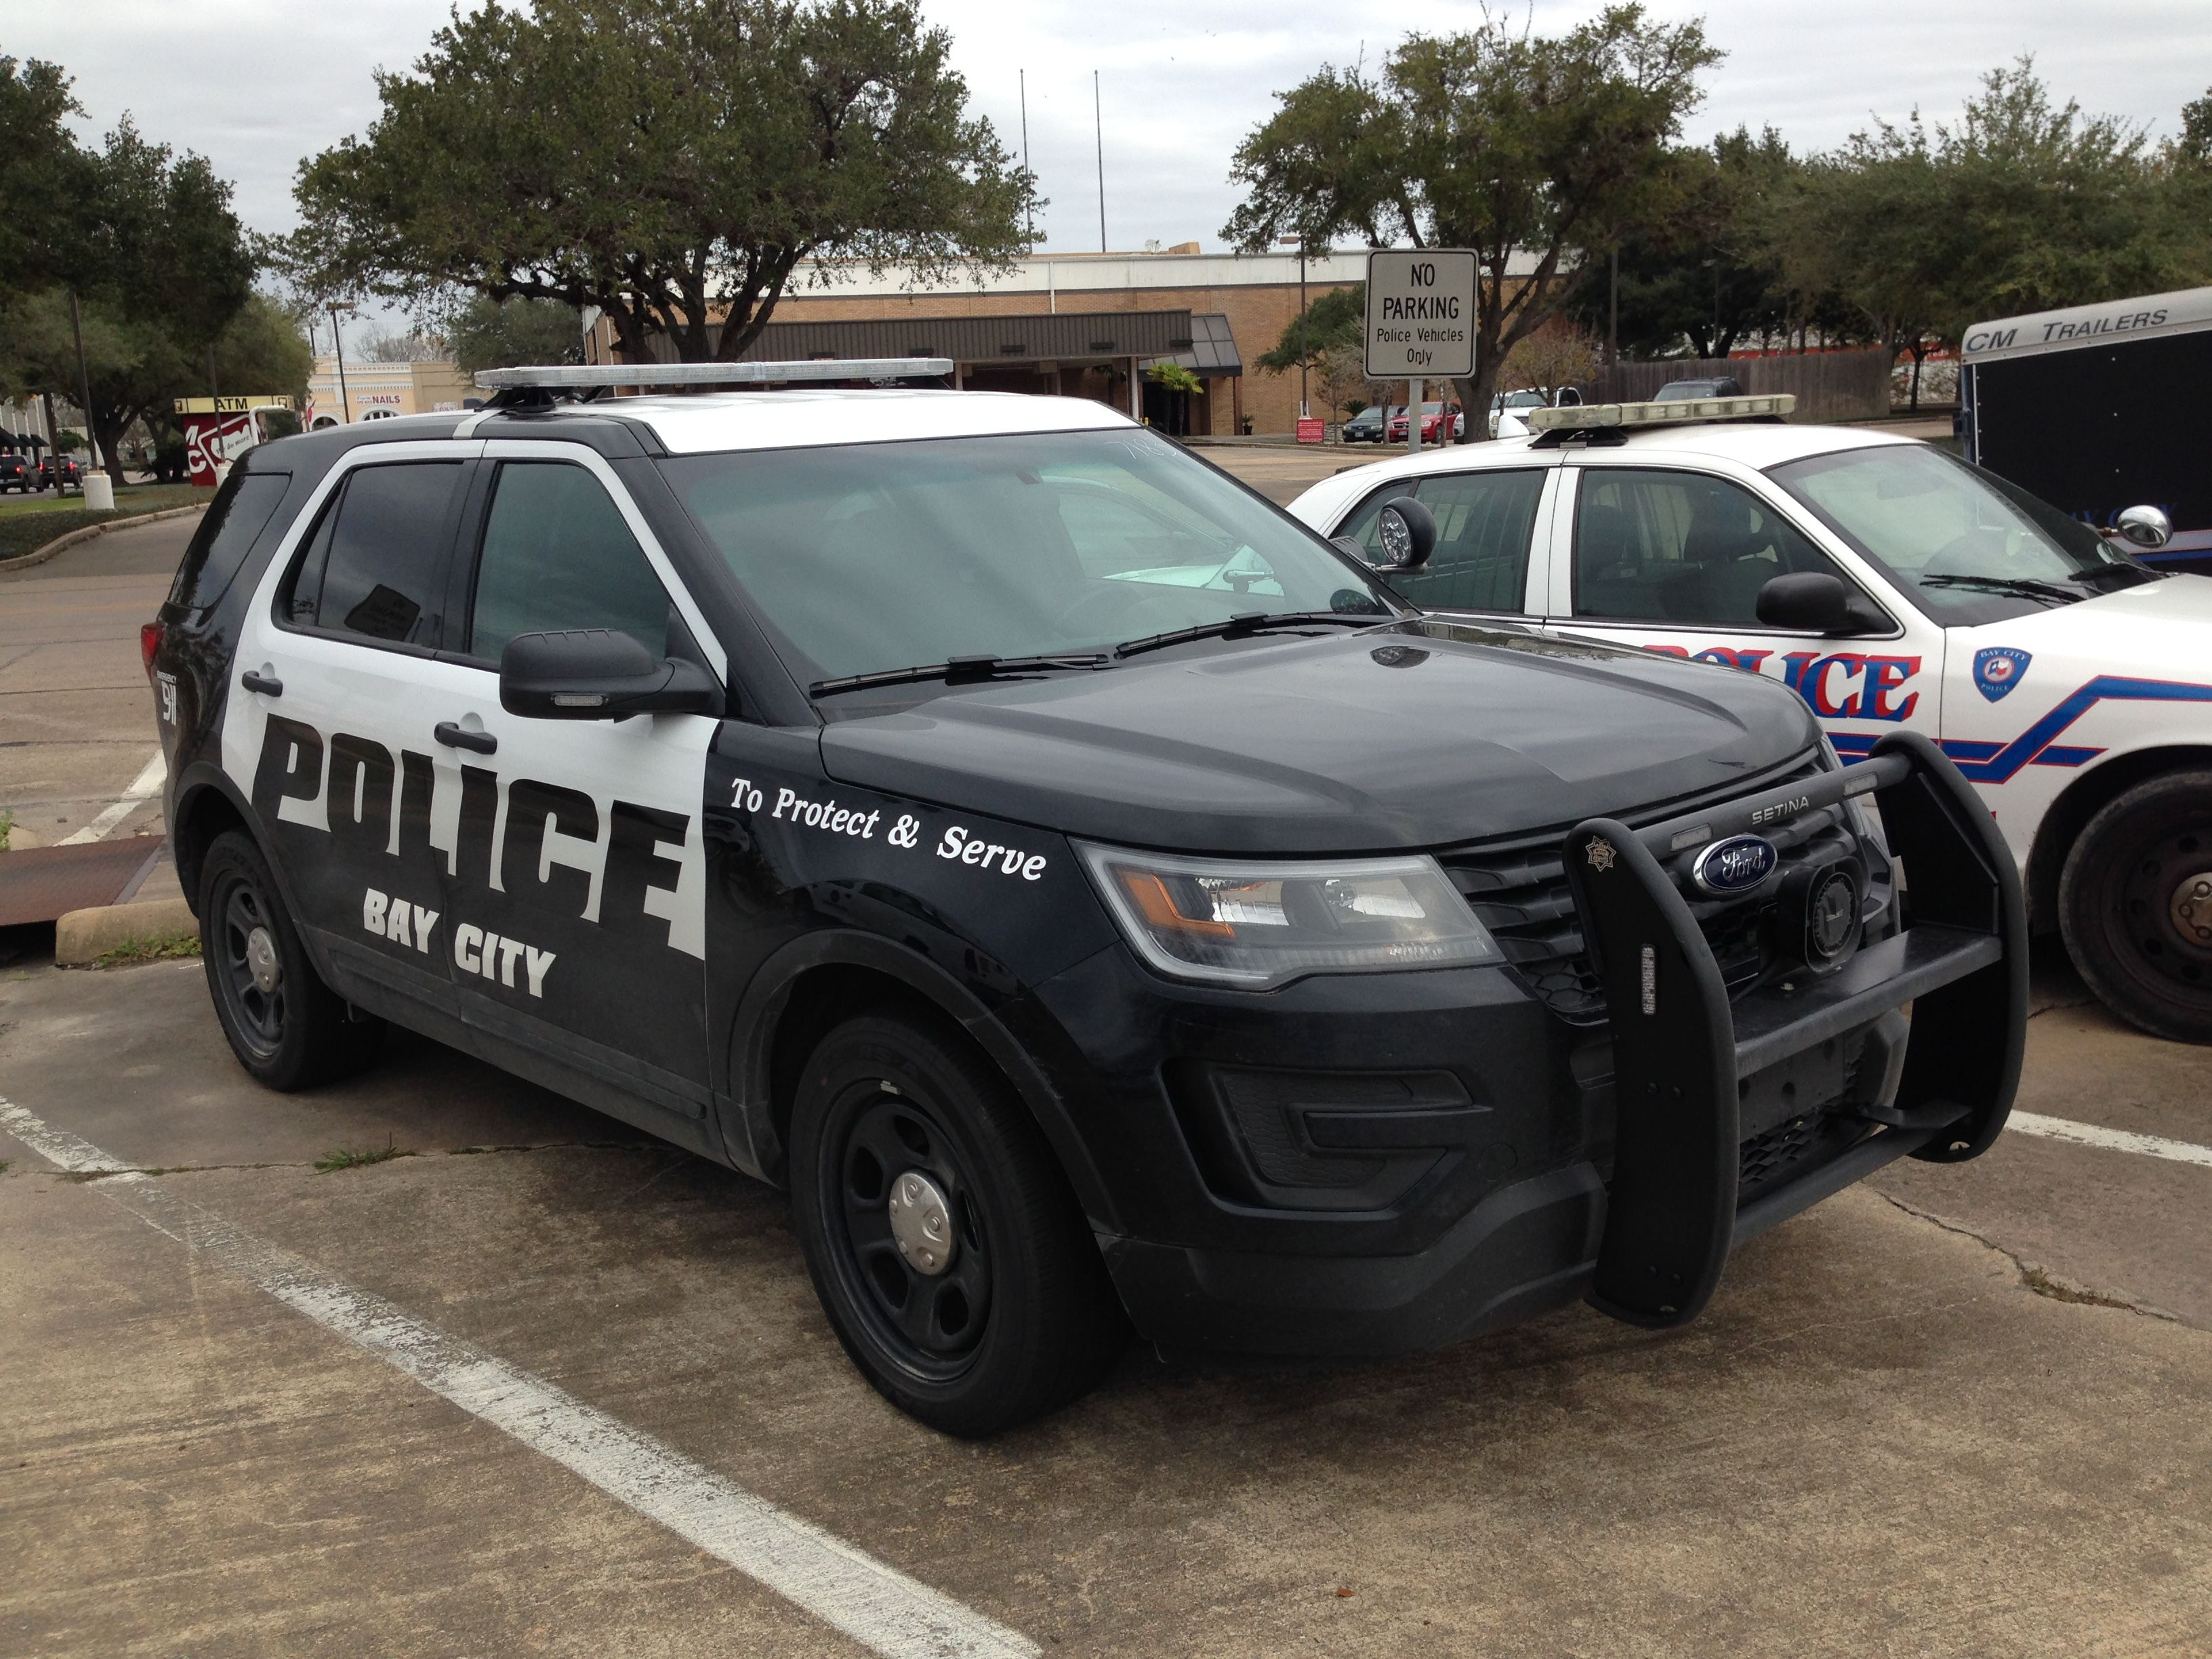 Bay City Police Ford Suv New Livery Texas Ford Suv Ford Police Suv